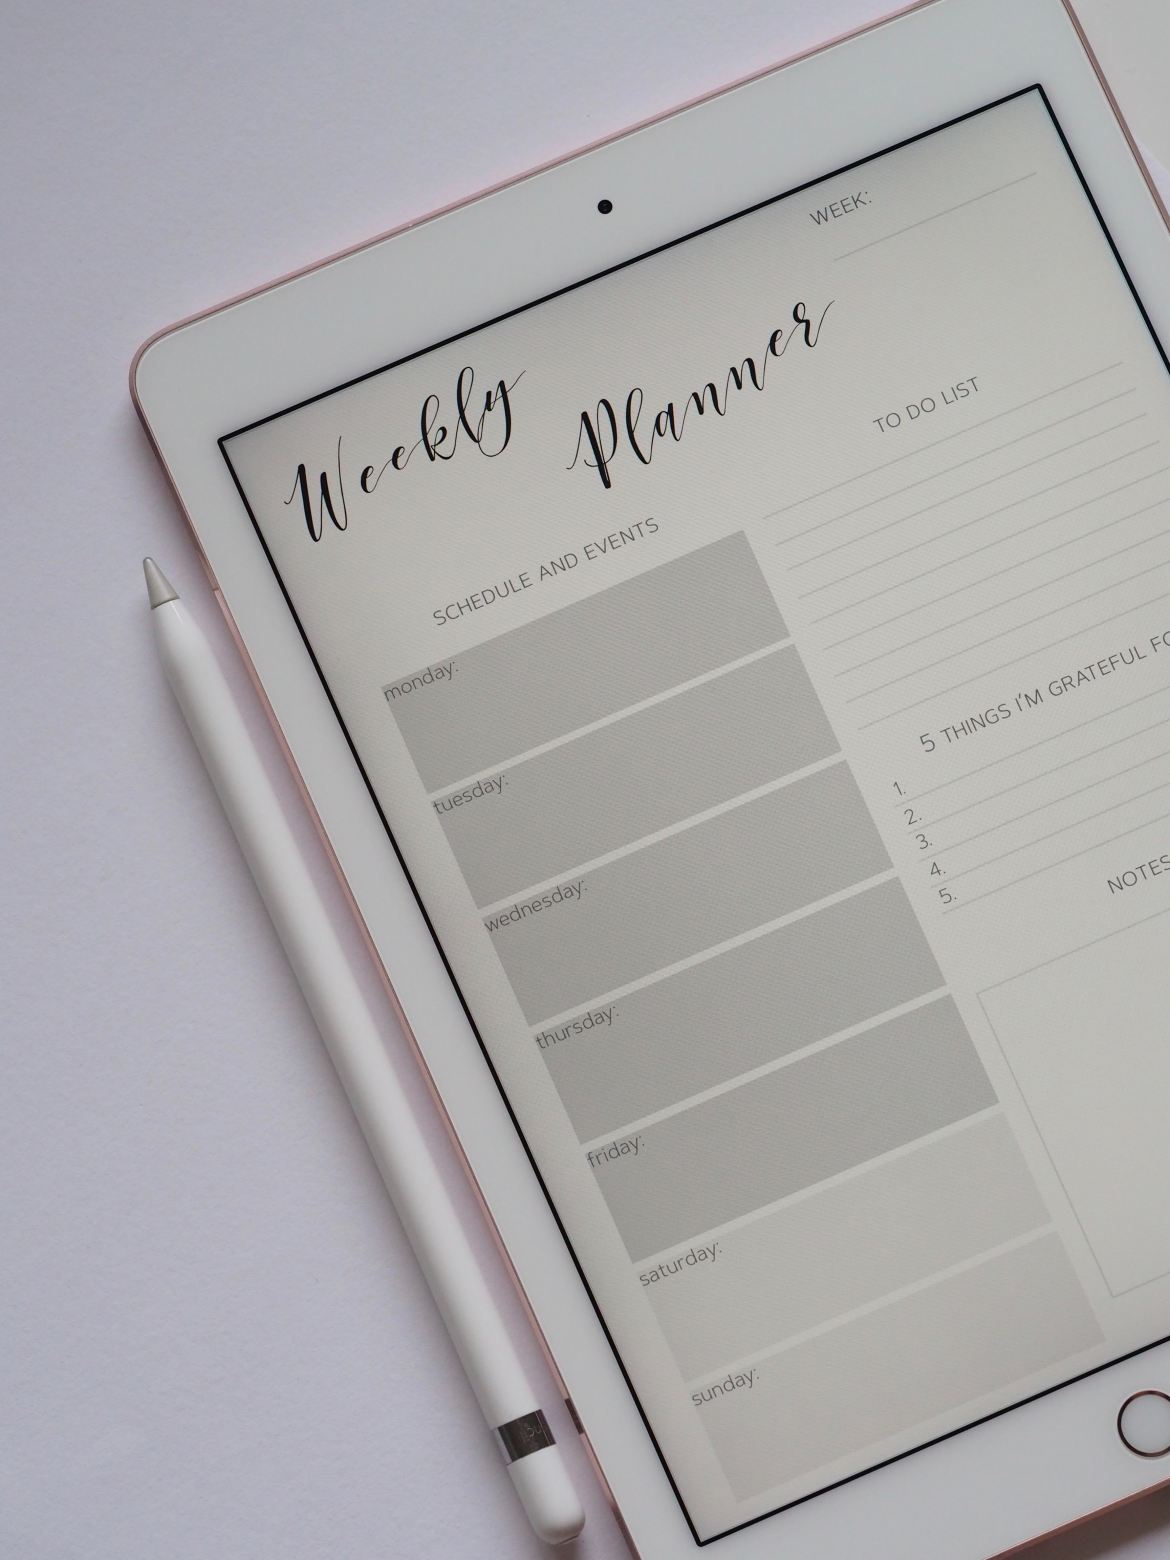 Best Apps Simplify Your Life